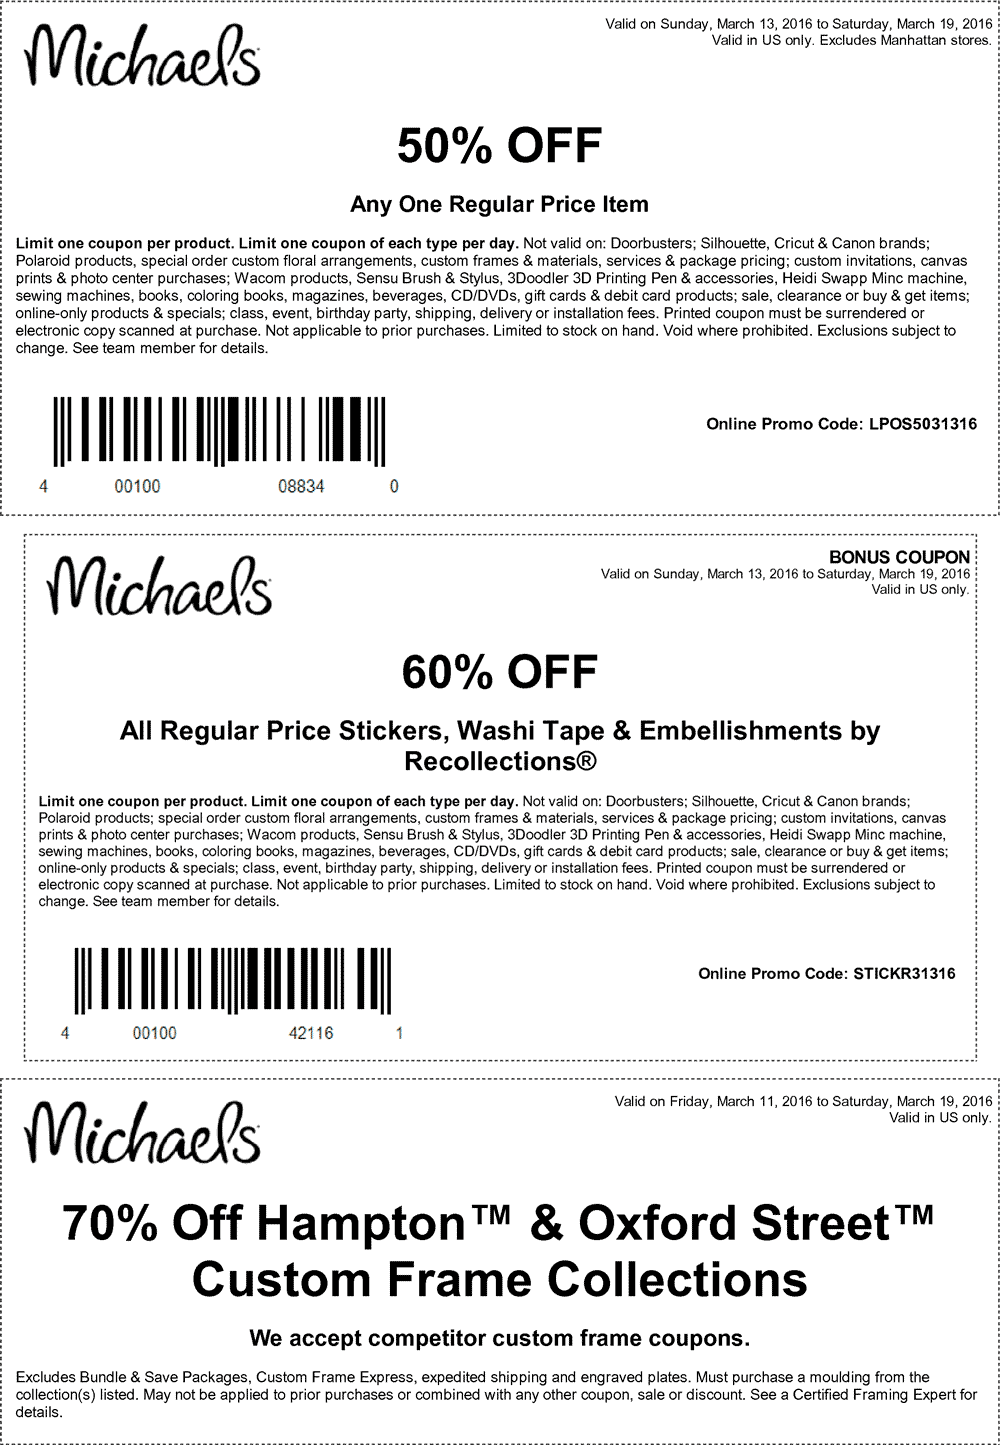 Michaels Coupon November 2018 50% off a single item at Michaels, or online via promo code LPOS5031316